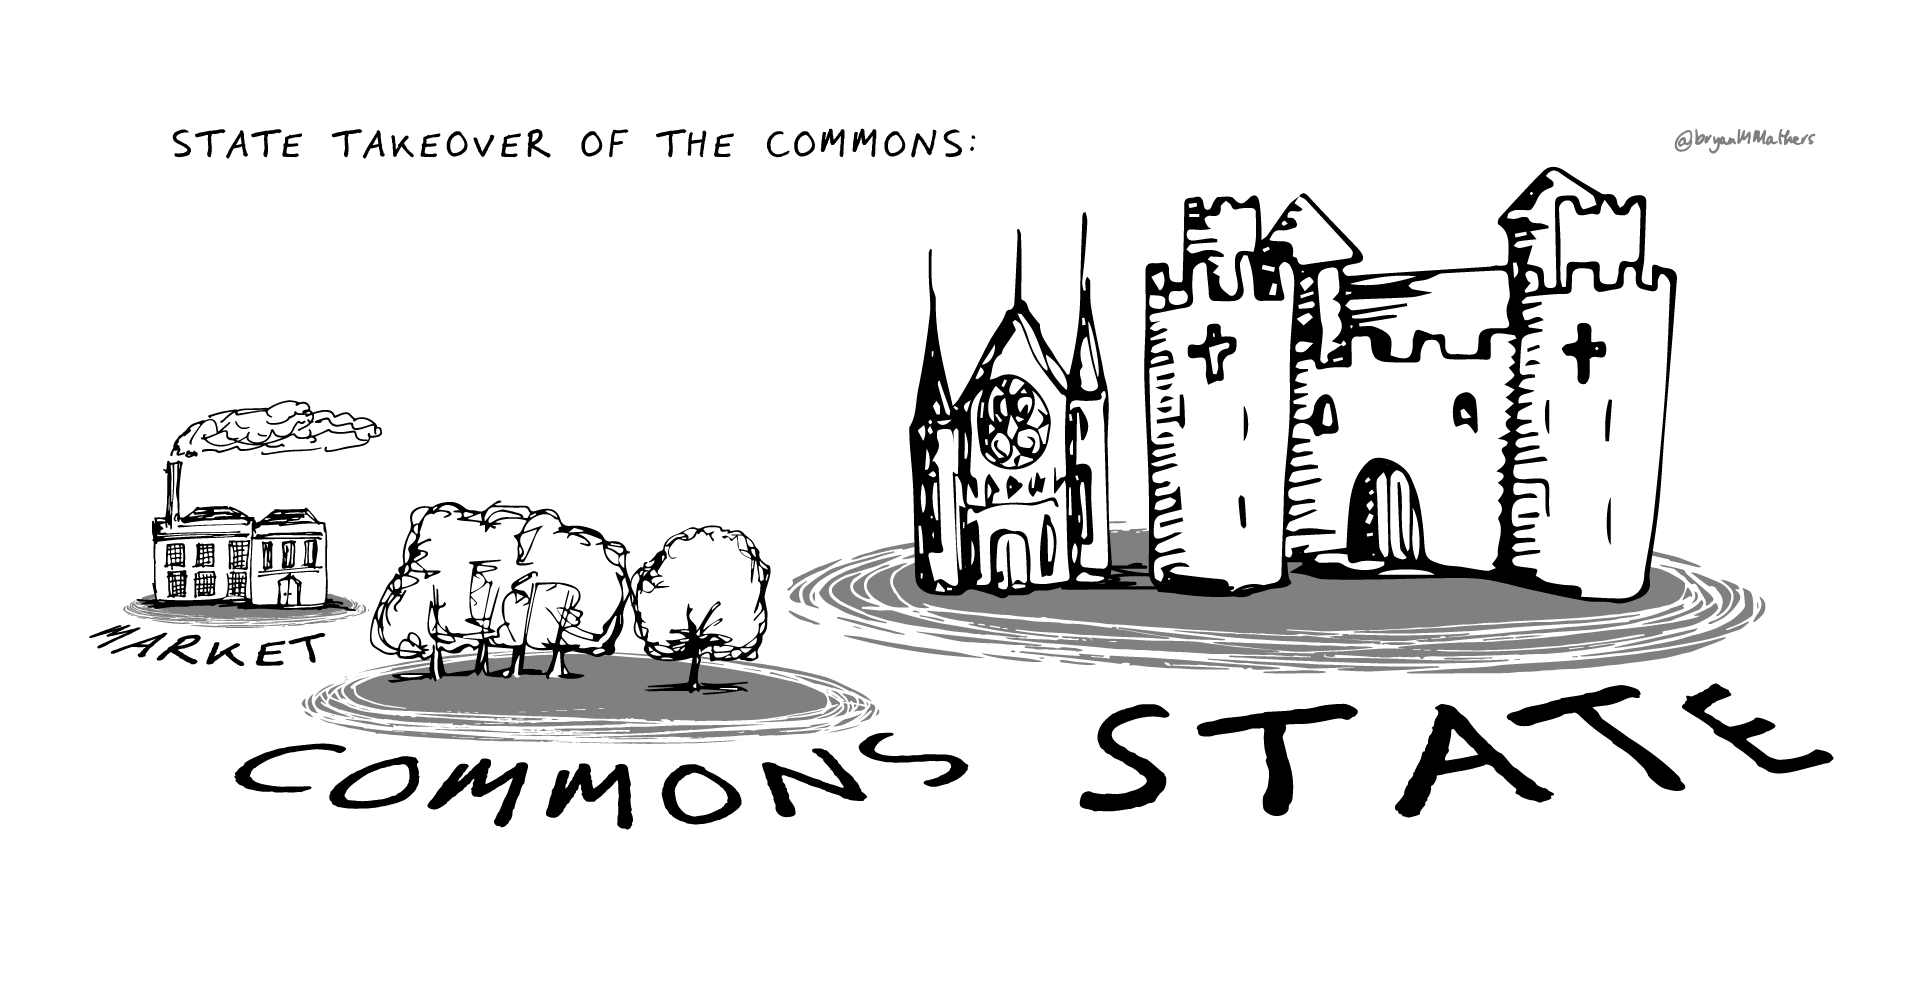 State takeover - Market, State, Commons